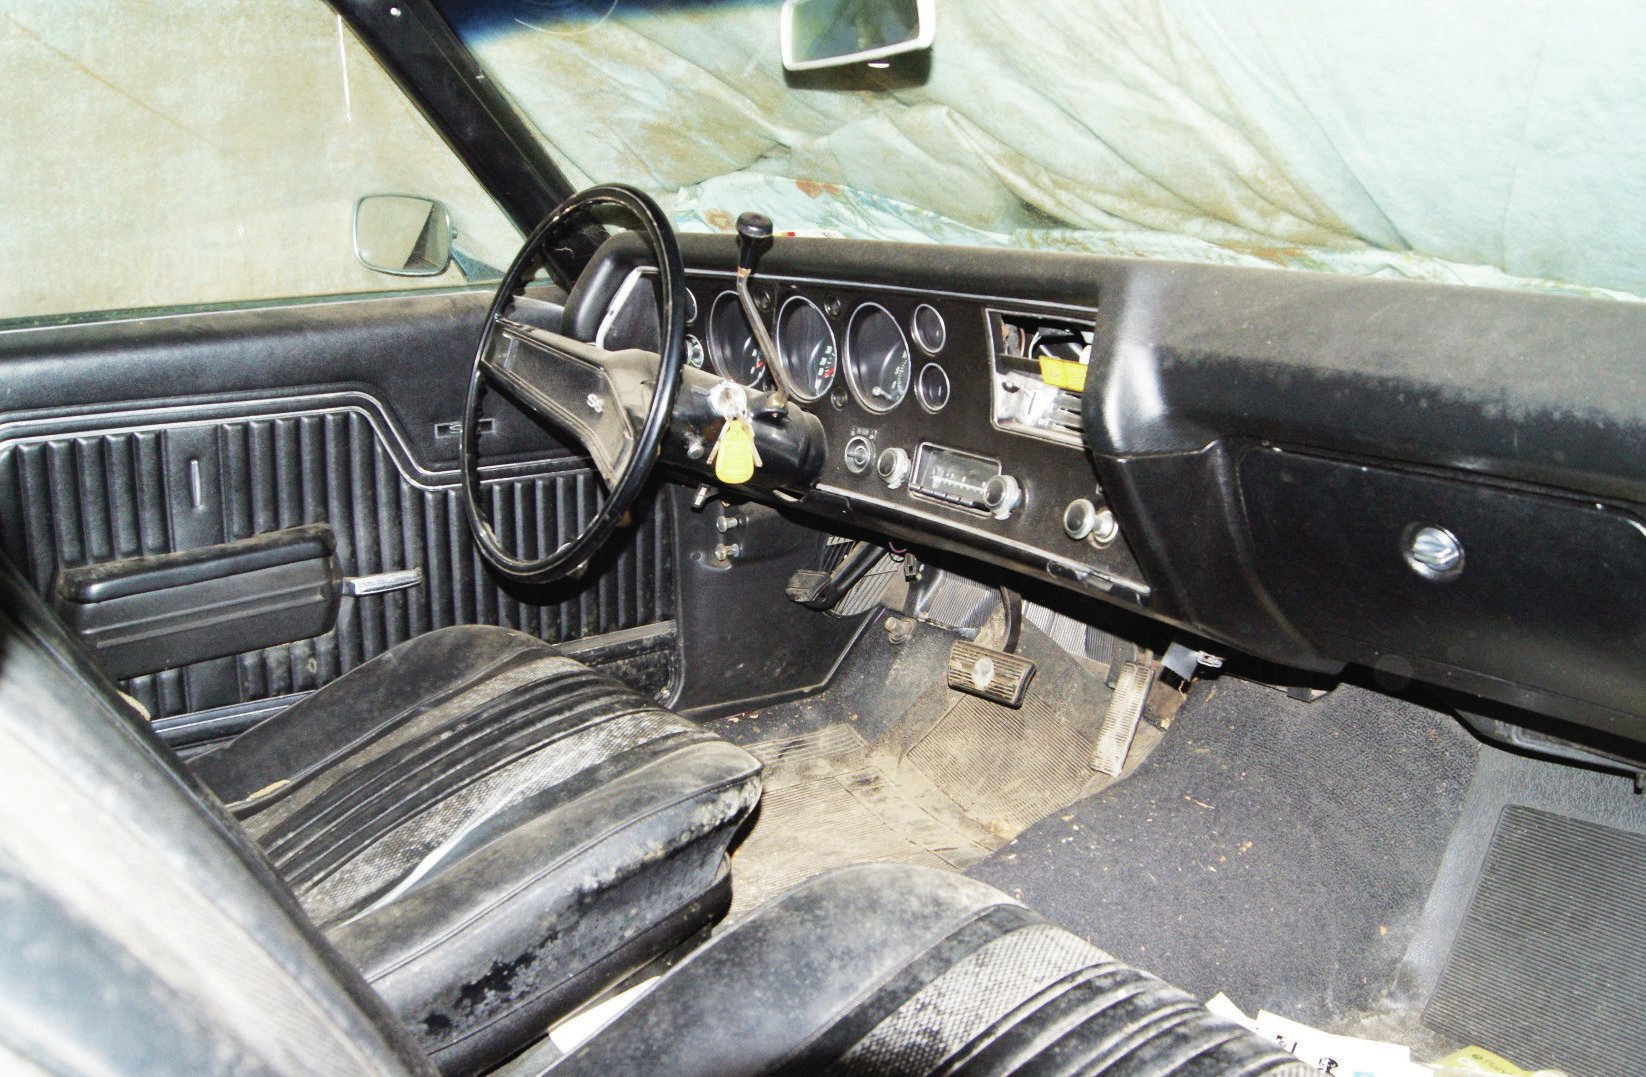 Except for a mold infestation, the interior is in decent shape. Note the factory radio is intact and the keys are still in the ignition.